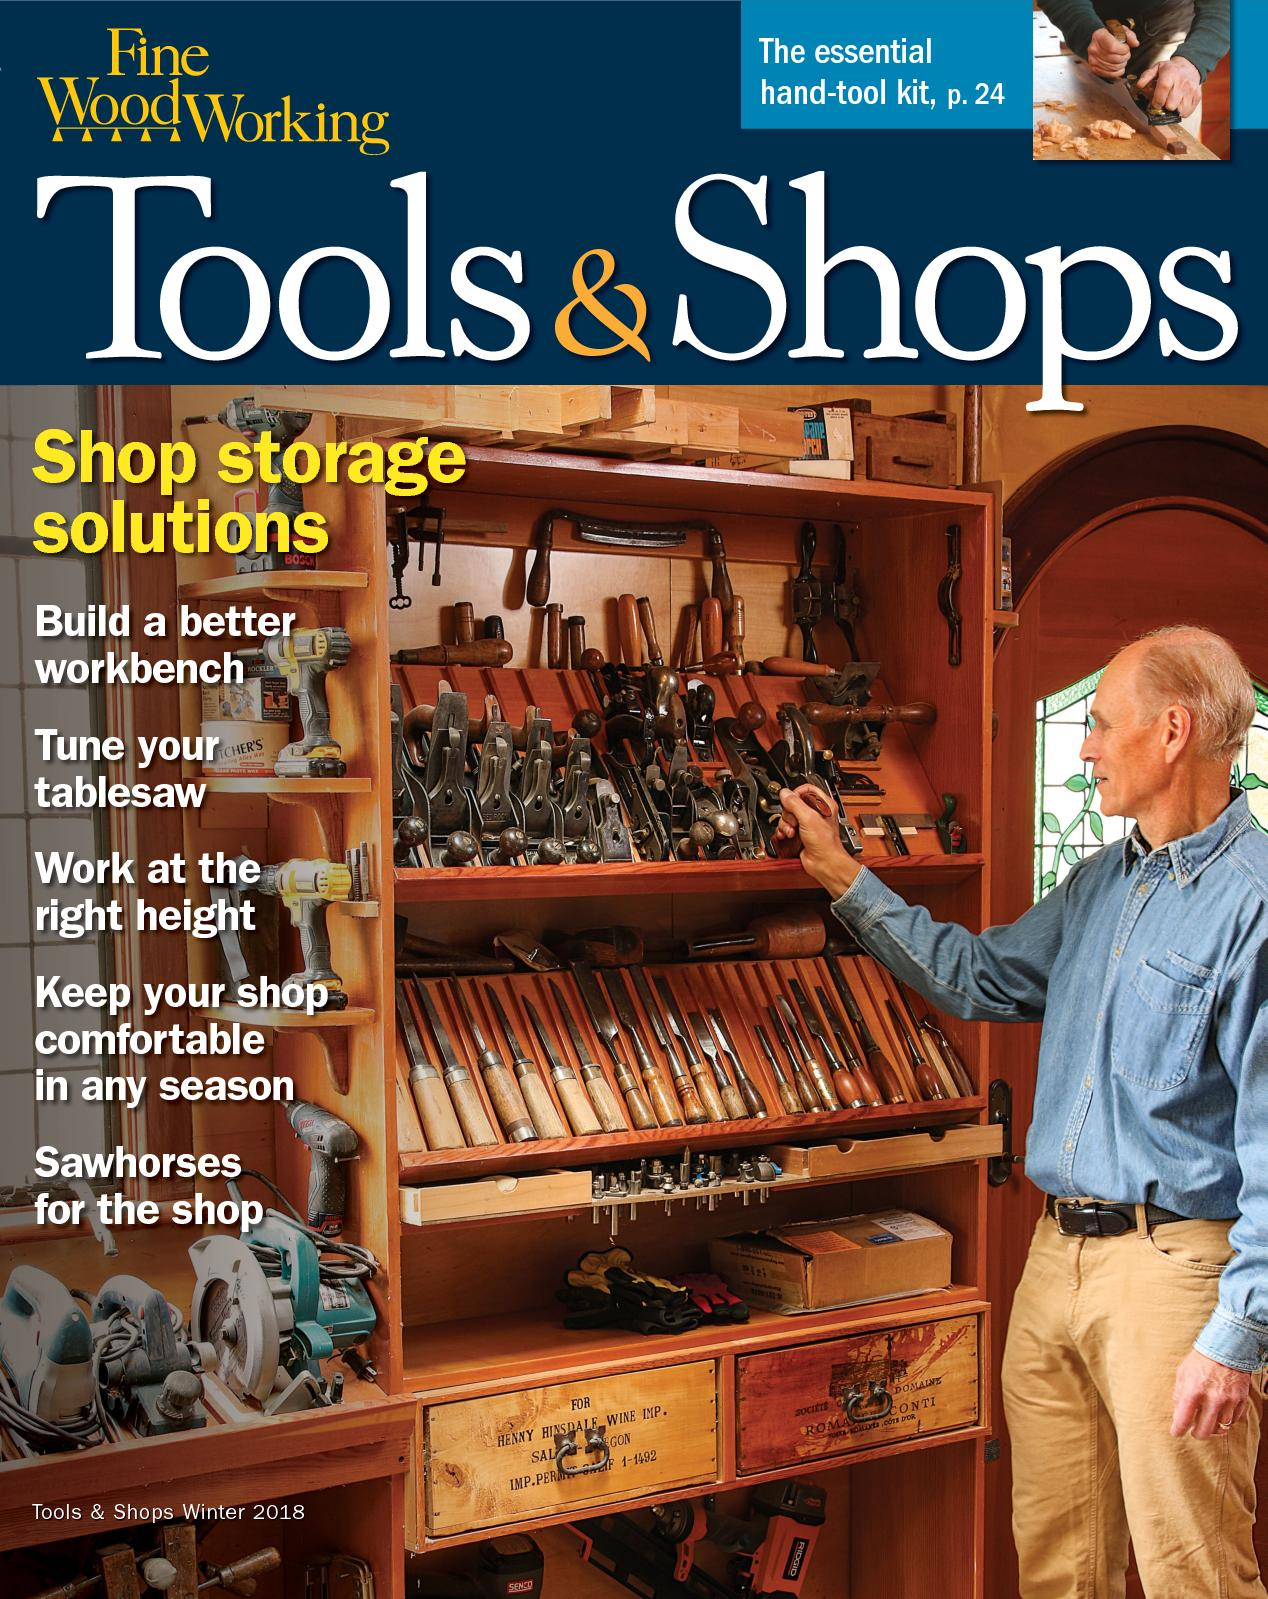 Calam O Fine Woodworking 265 Winter 2017 2018 Tools And